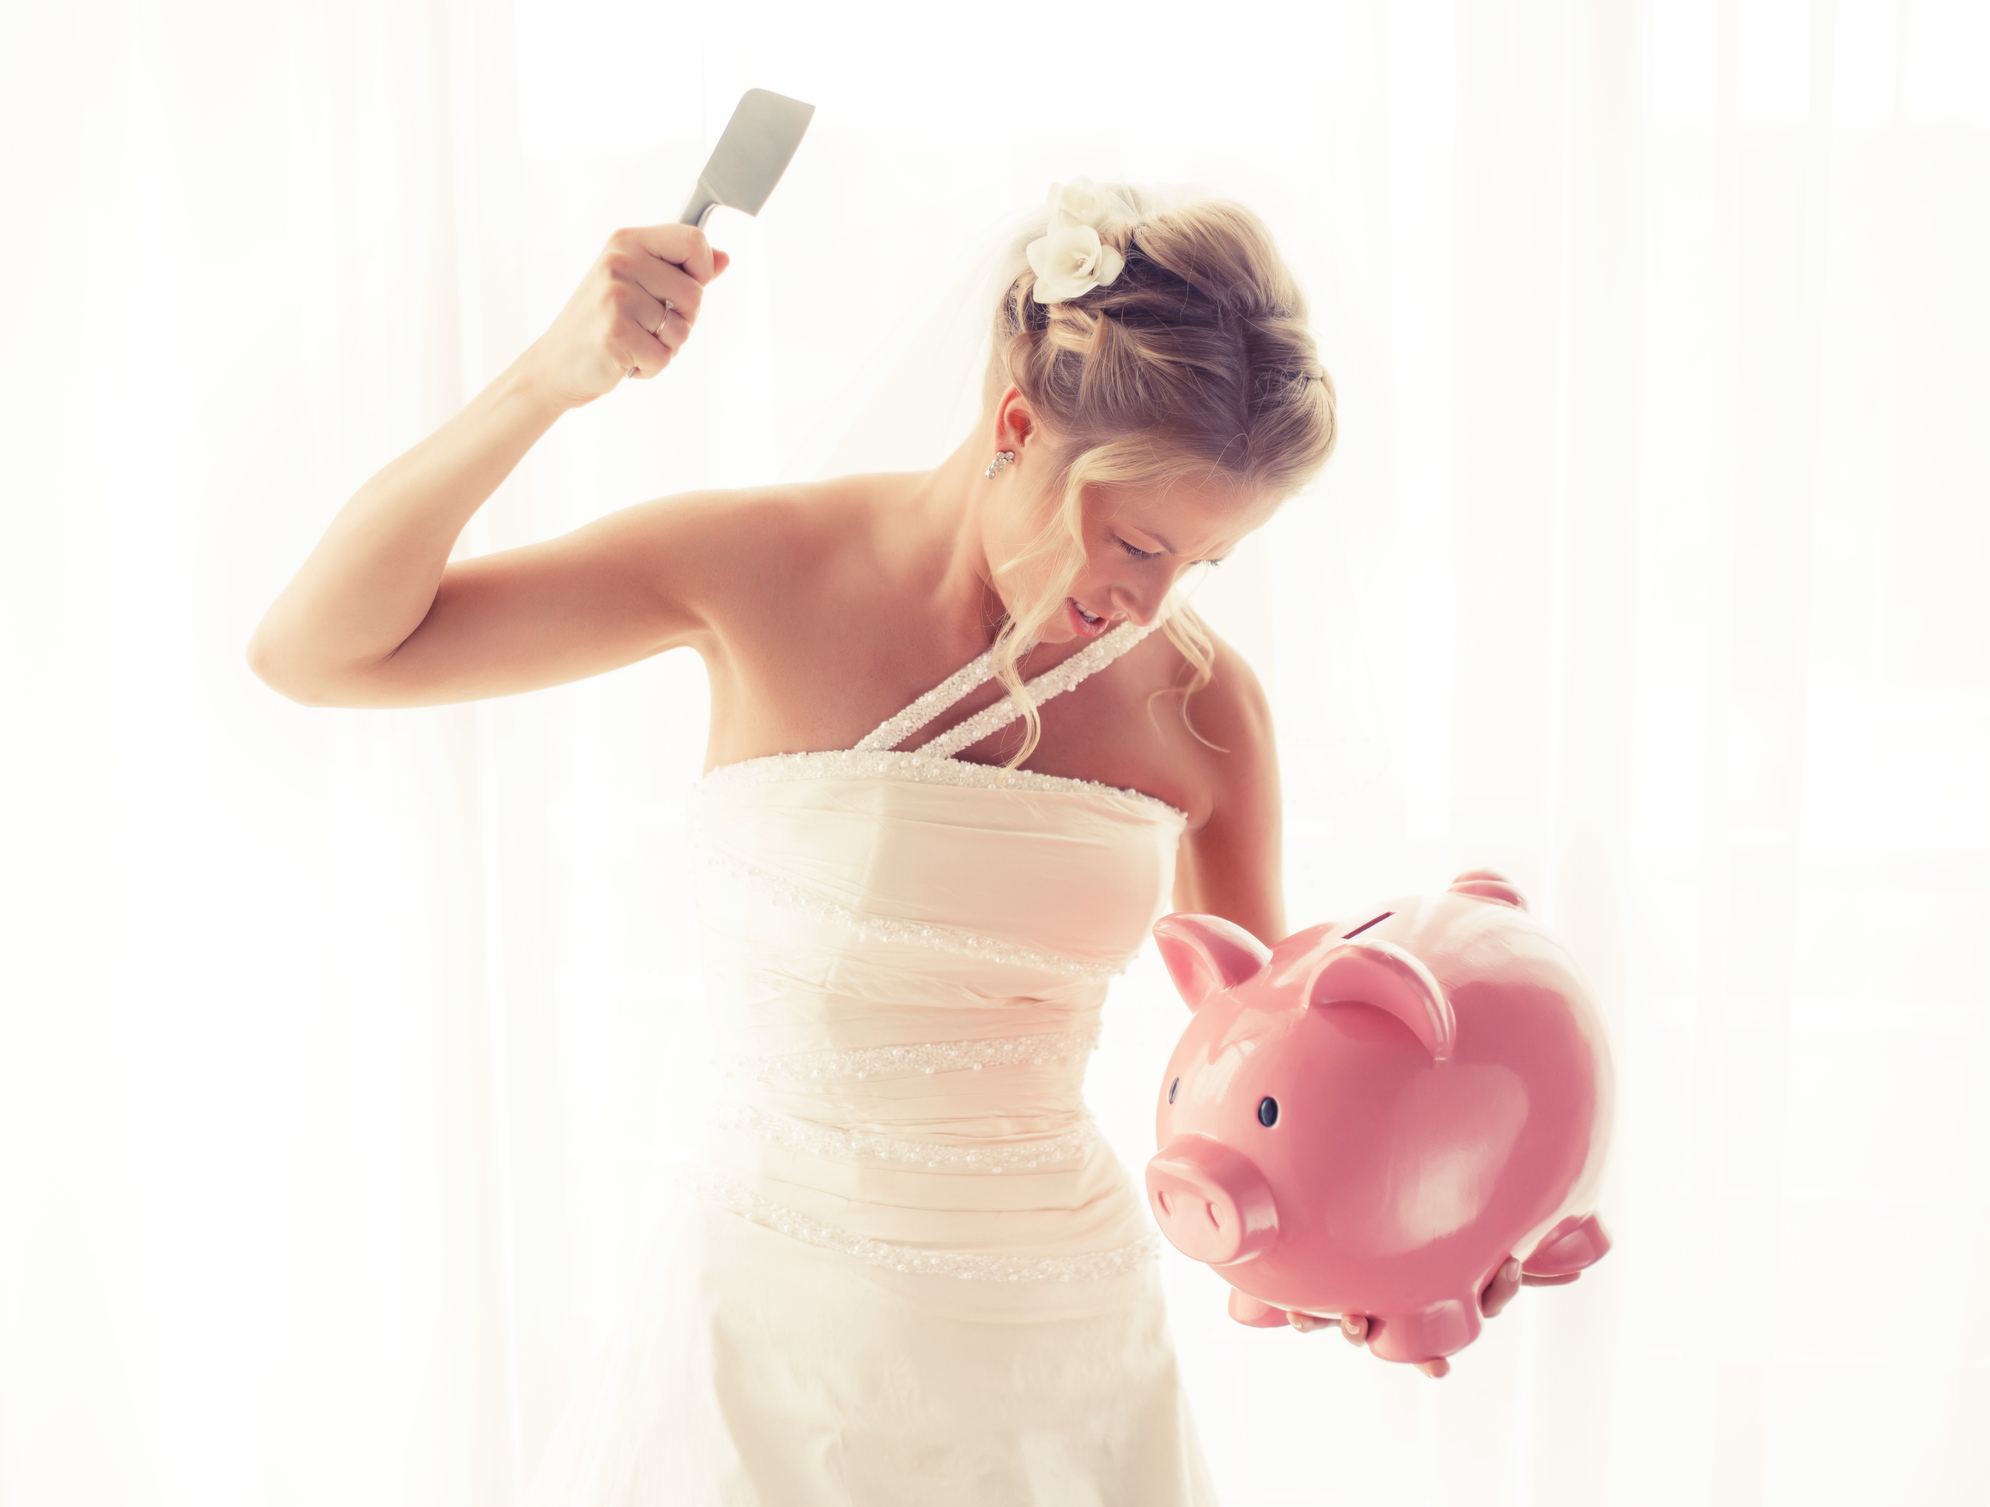 Bride Breaking Piggy Bank